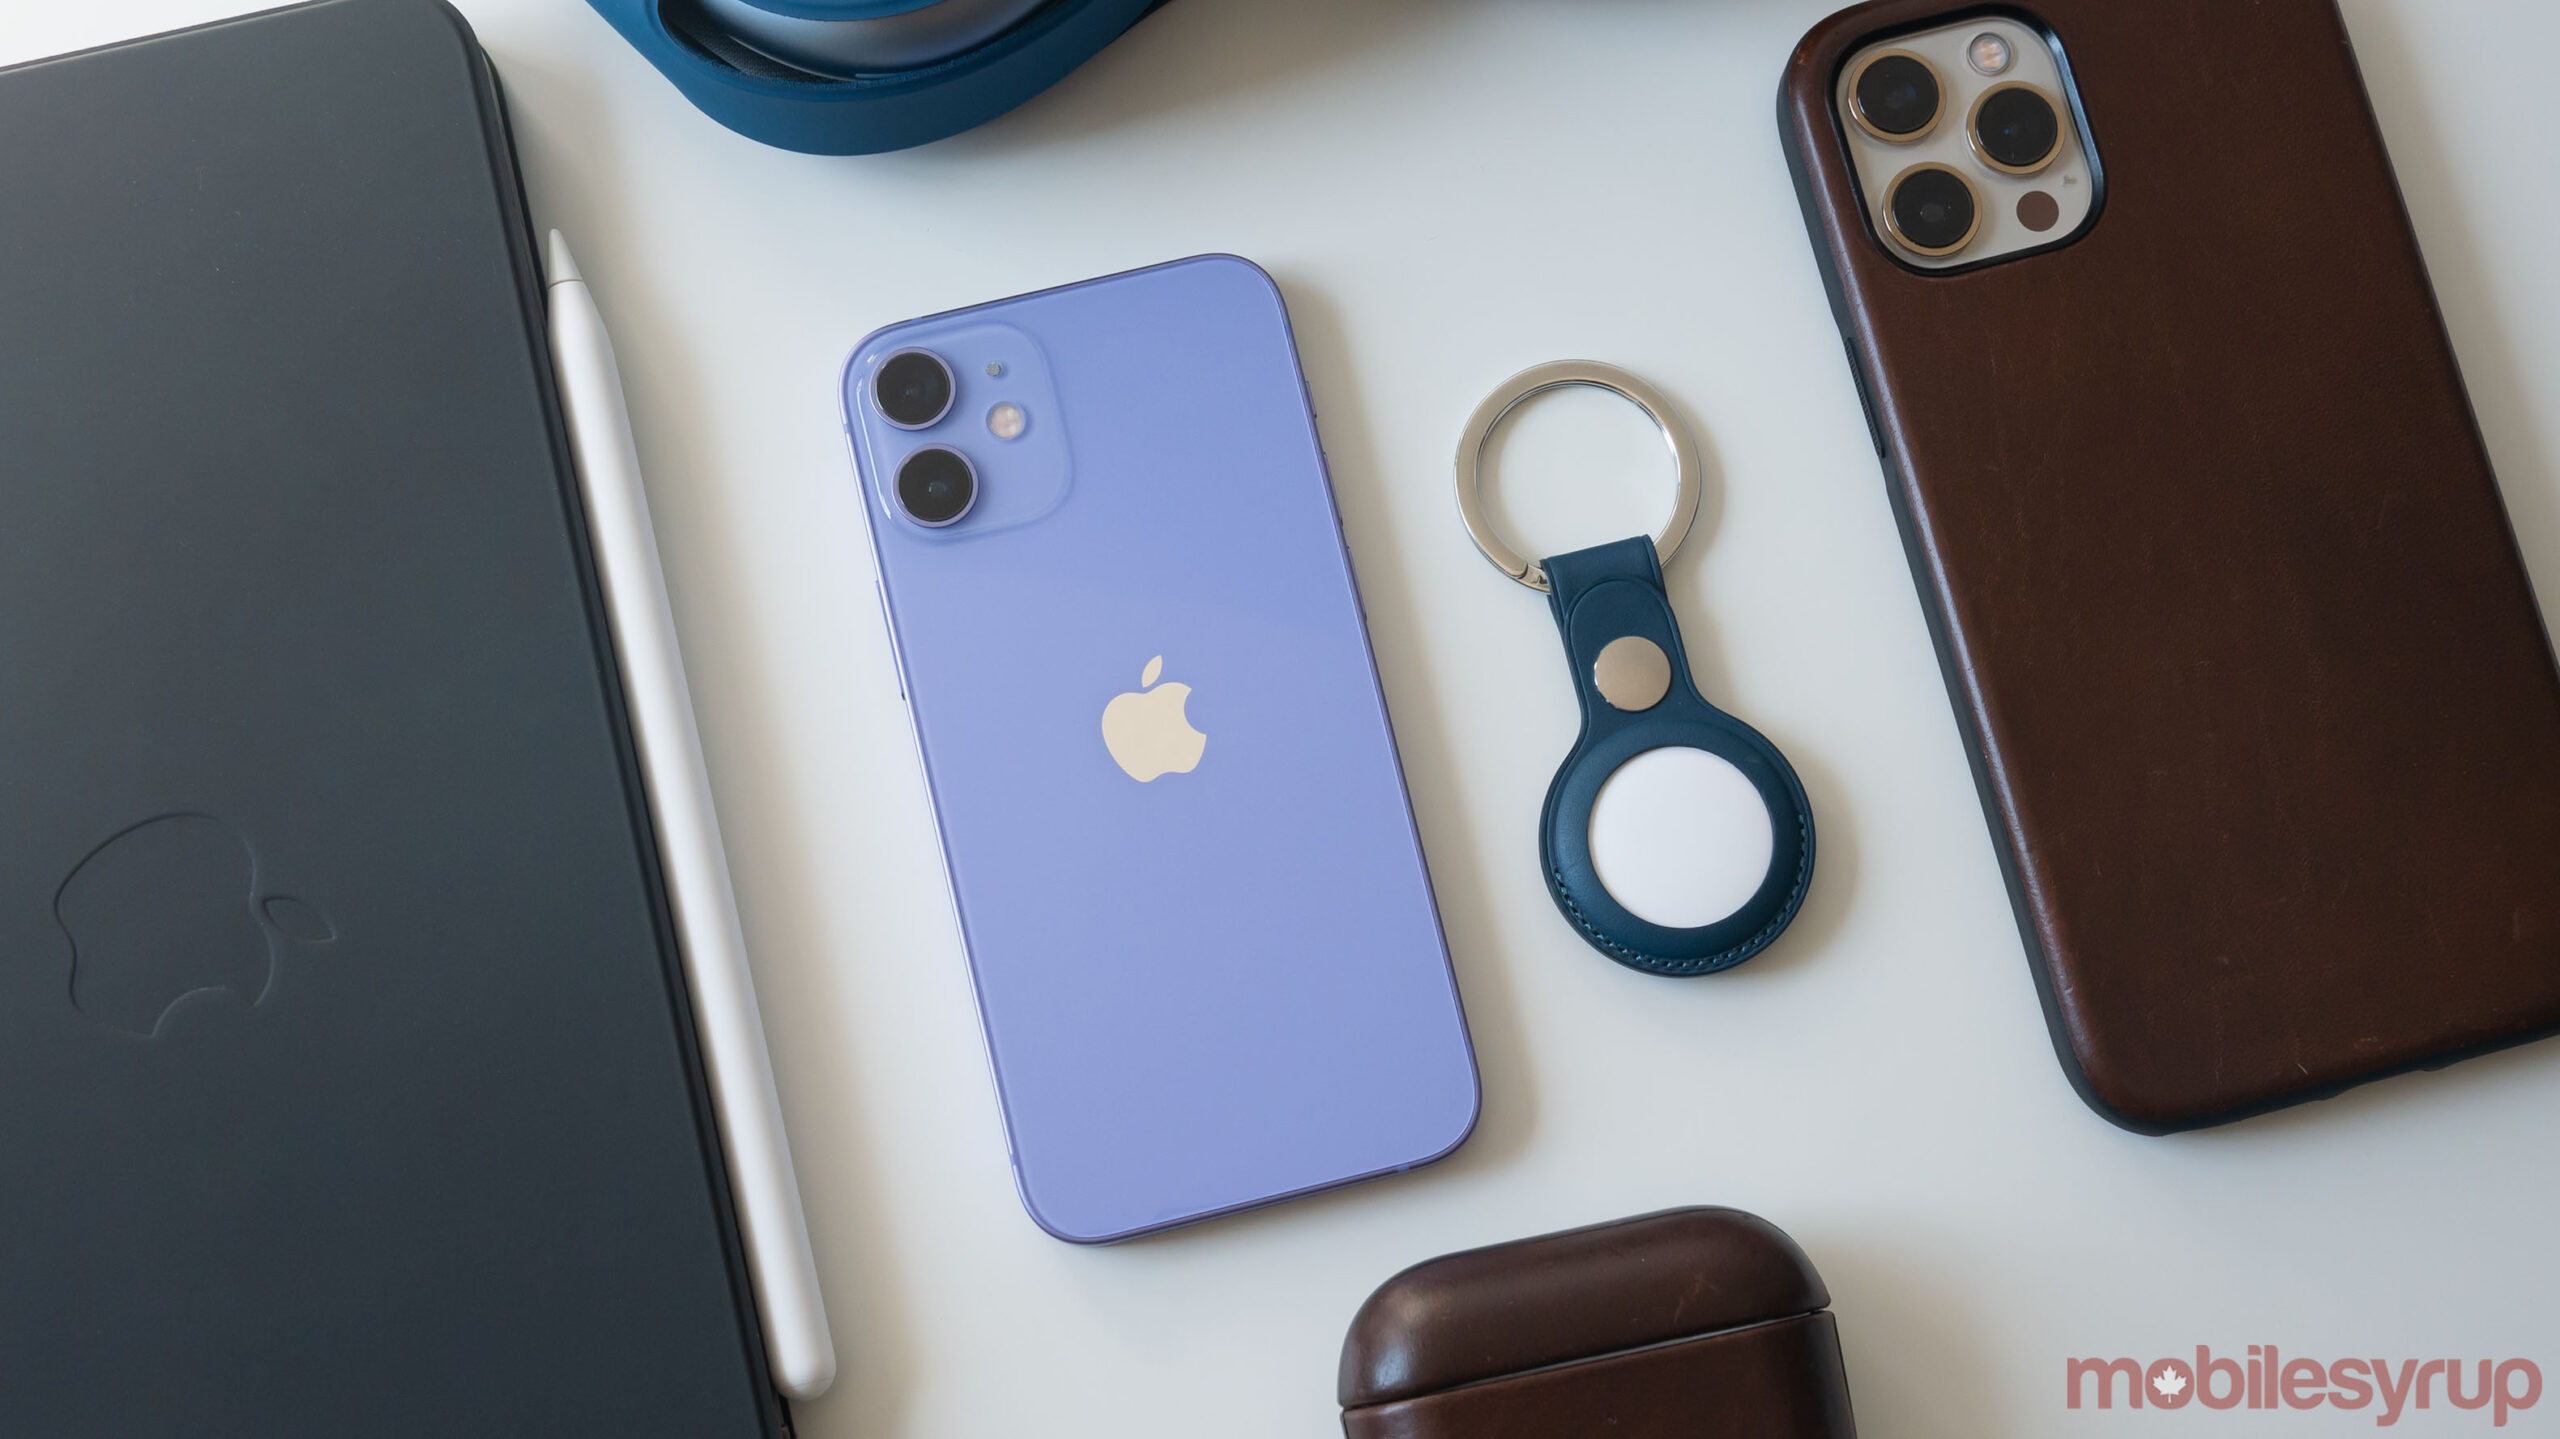 Purple iPhone 12 and AirTag